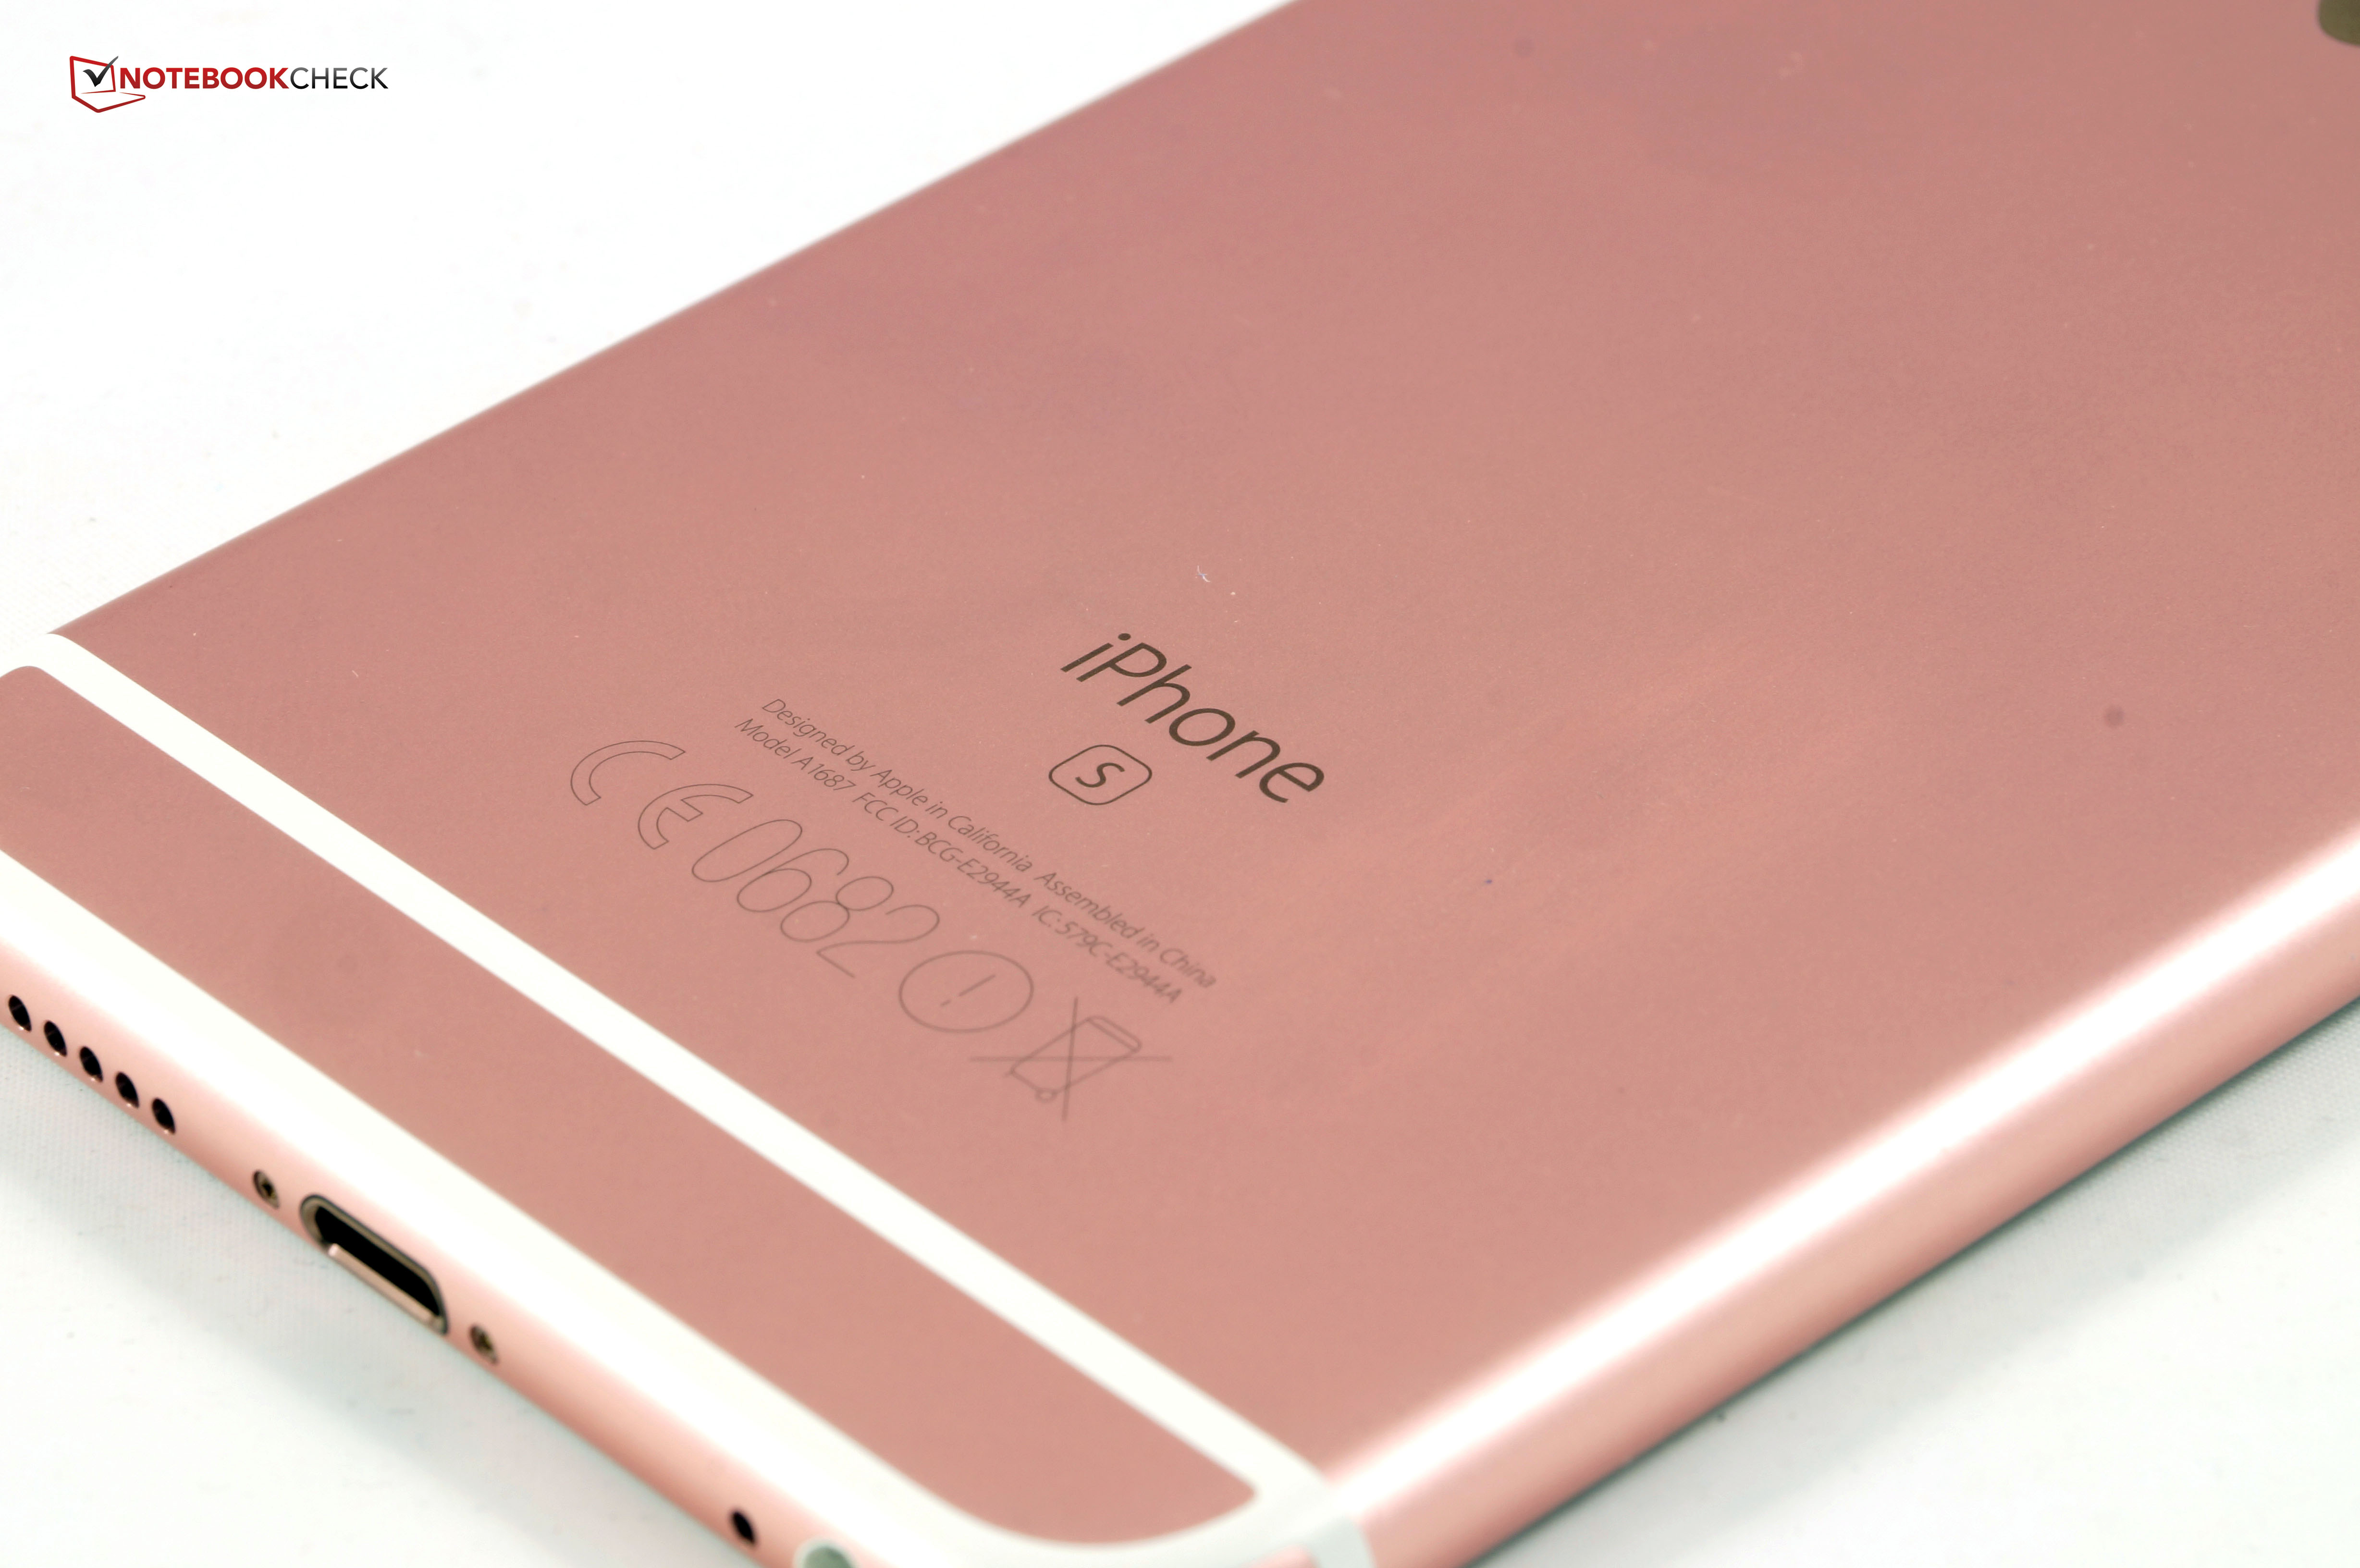 Test Apple iPhone 6S Plus Smartphone - Notebookcheck.com Tests